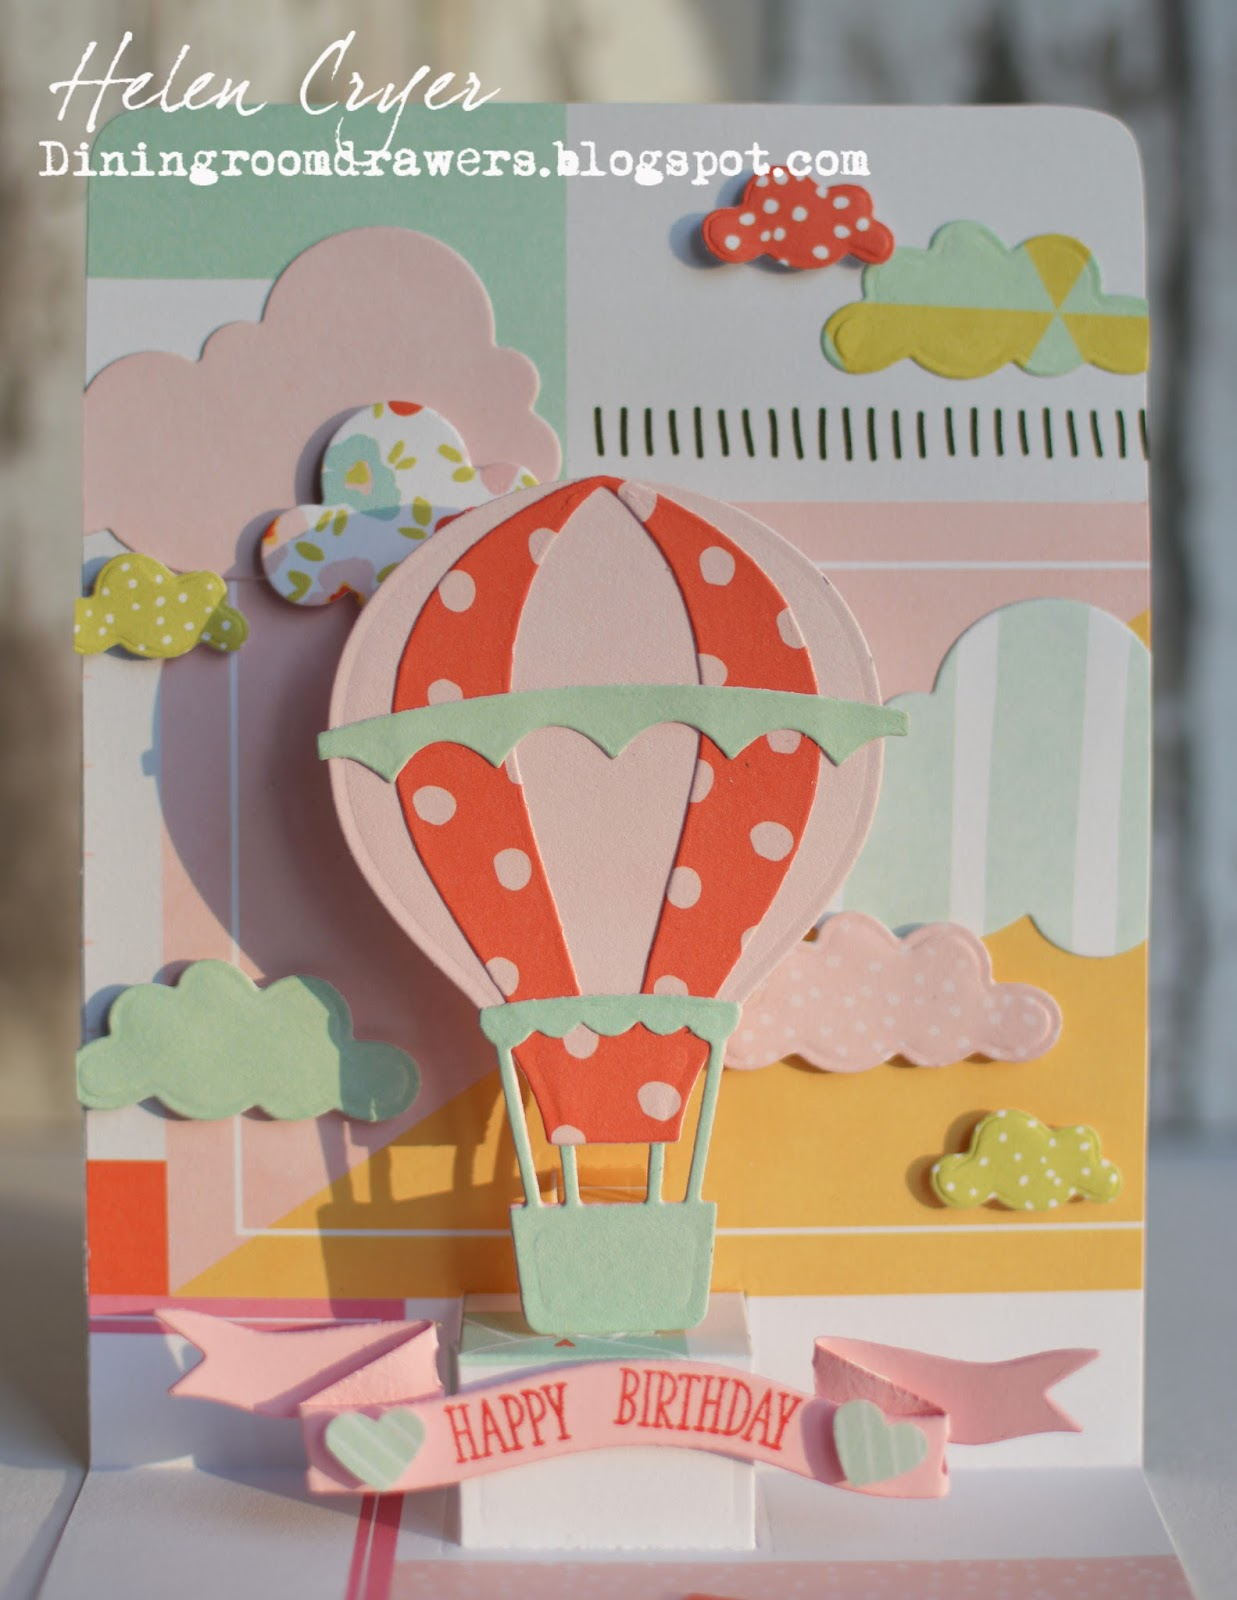 The dining room drawers pop up hot air balloon birthday card we r the banner die is from an old papertrey ink set stitched sentiments and the stamp is also from papertrey ink april mini stamp set bookmarktalkfo Image collections